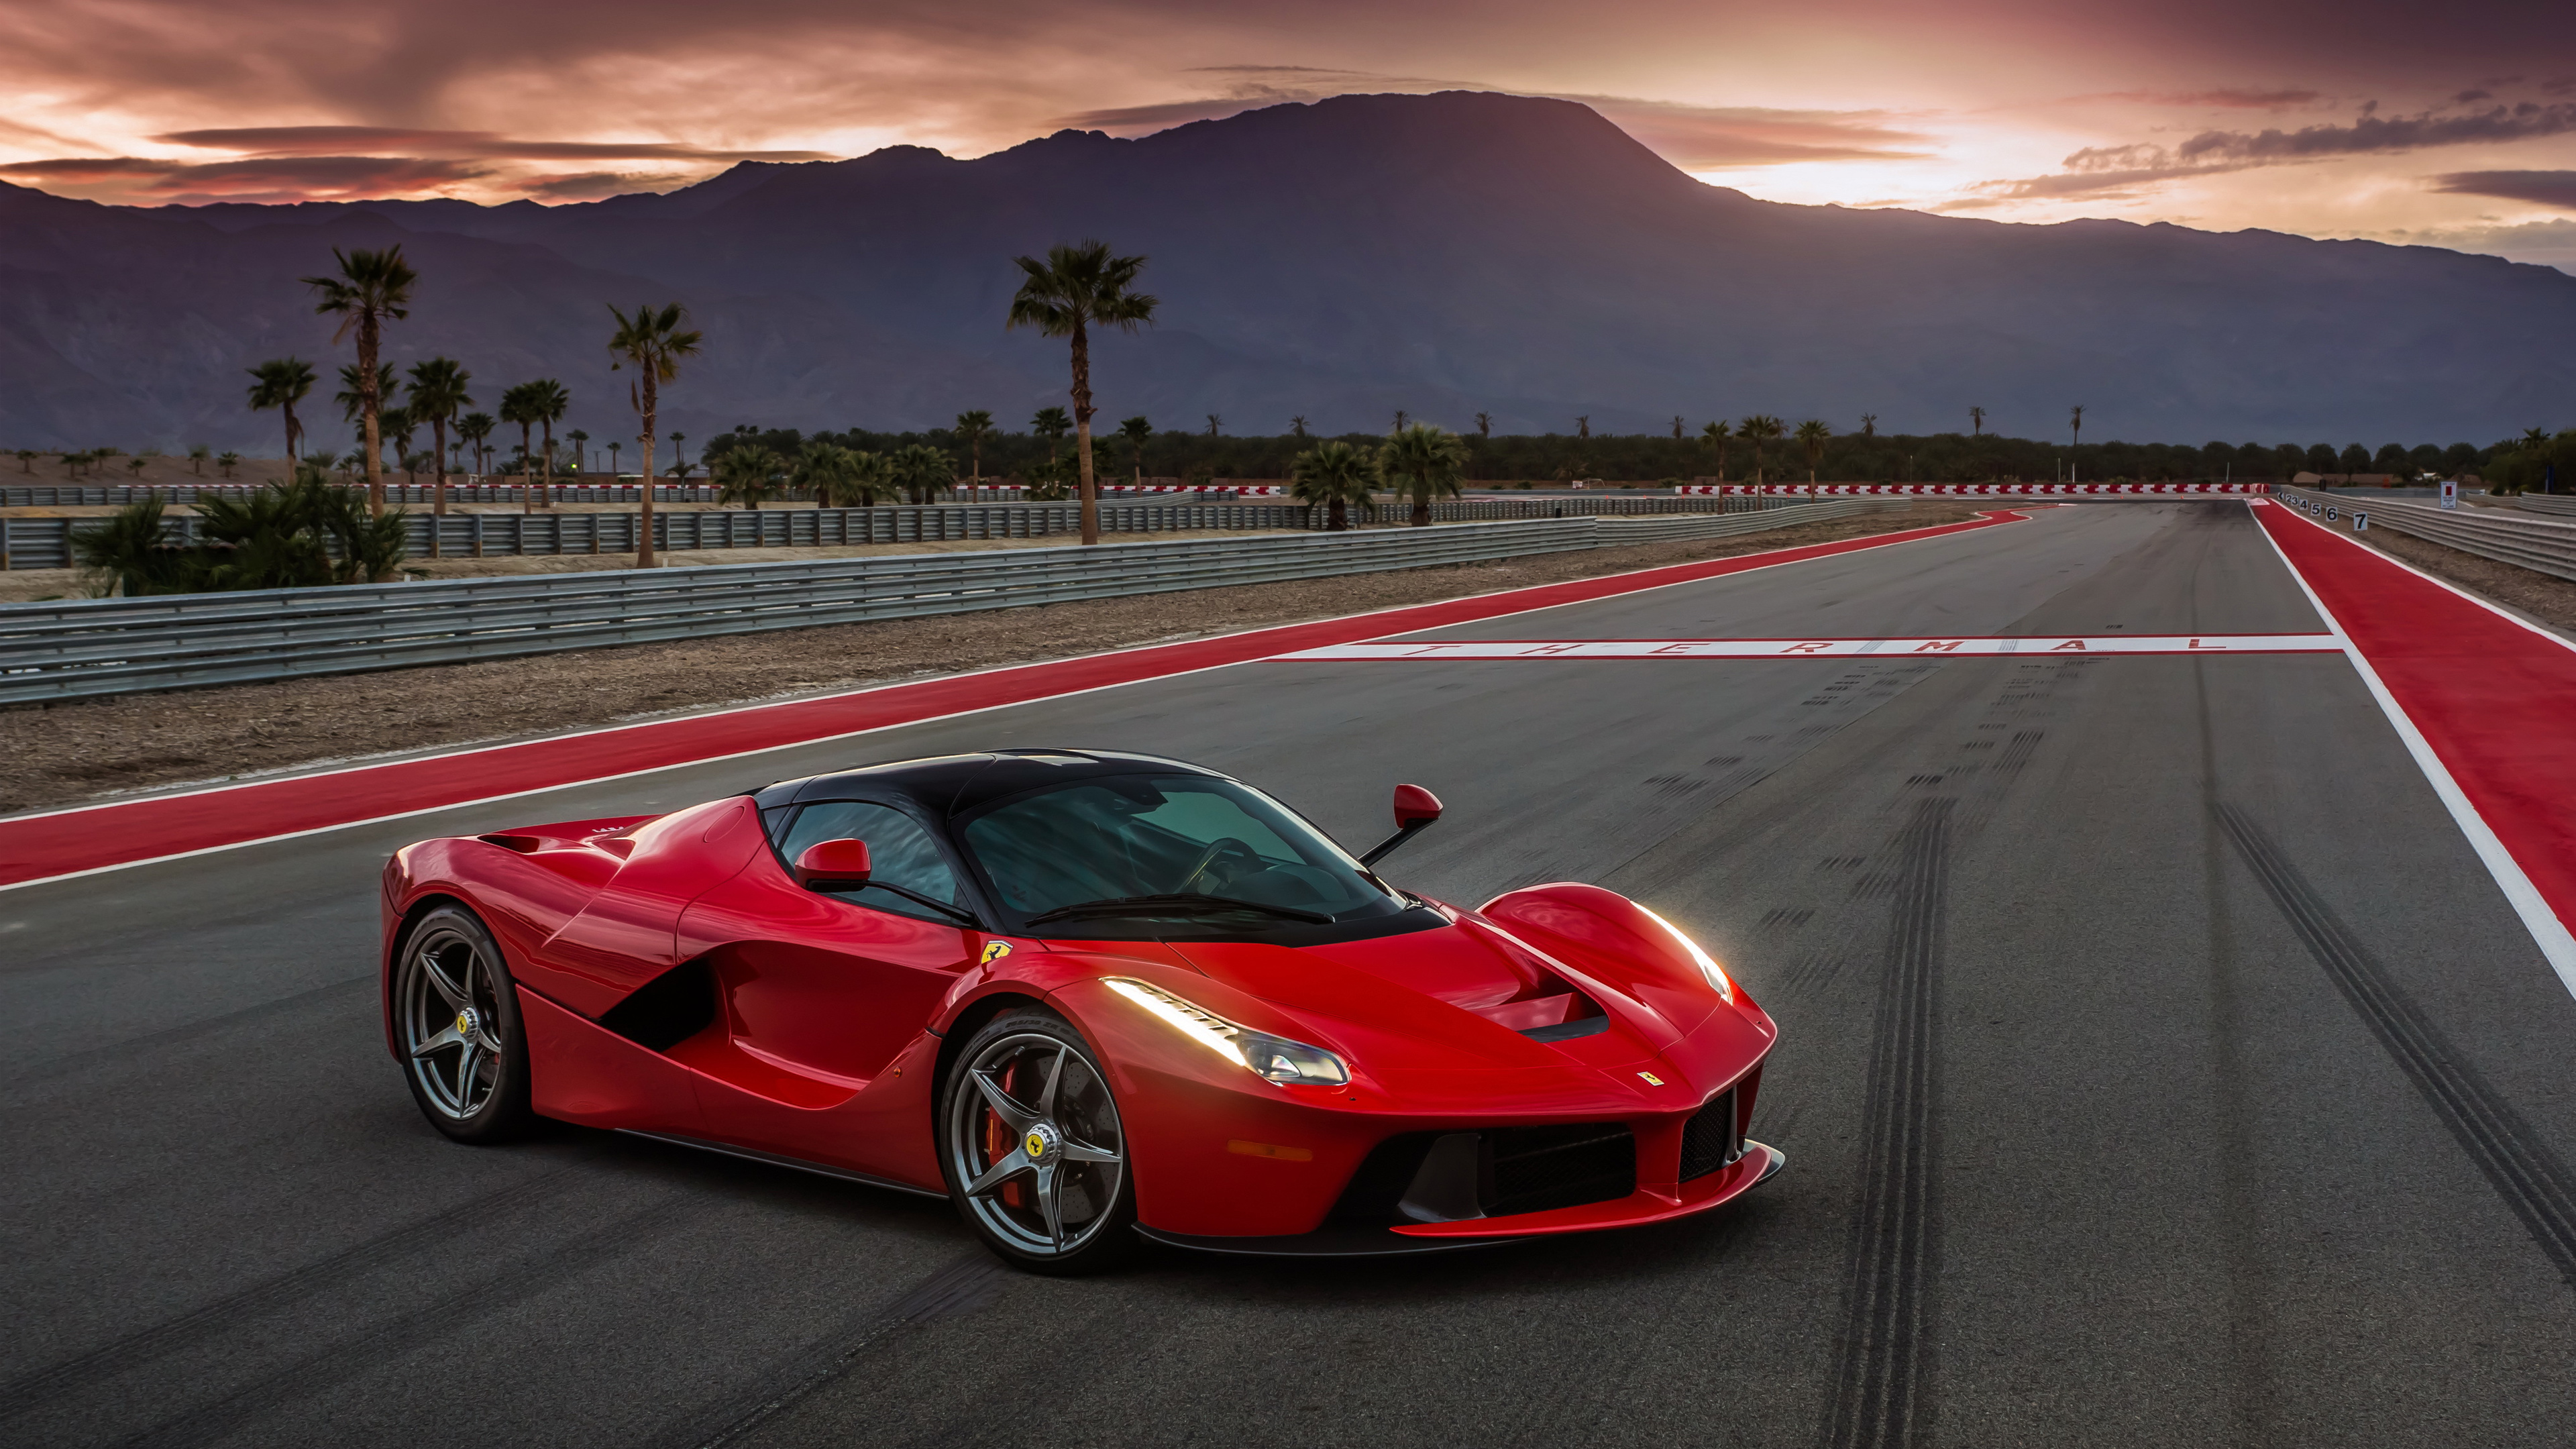 ferrari laferrari 4k wallpaper hd car wallpapers id 6928. Black Bedroom Furniture Sets. Home Design Ideas